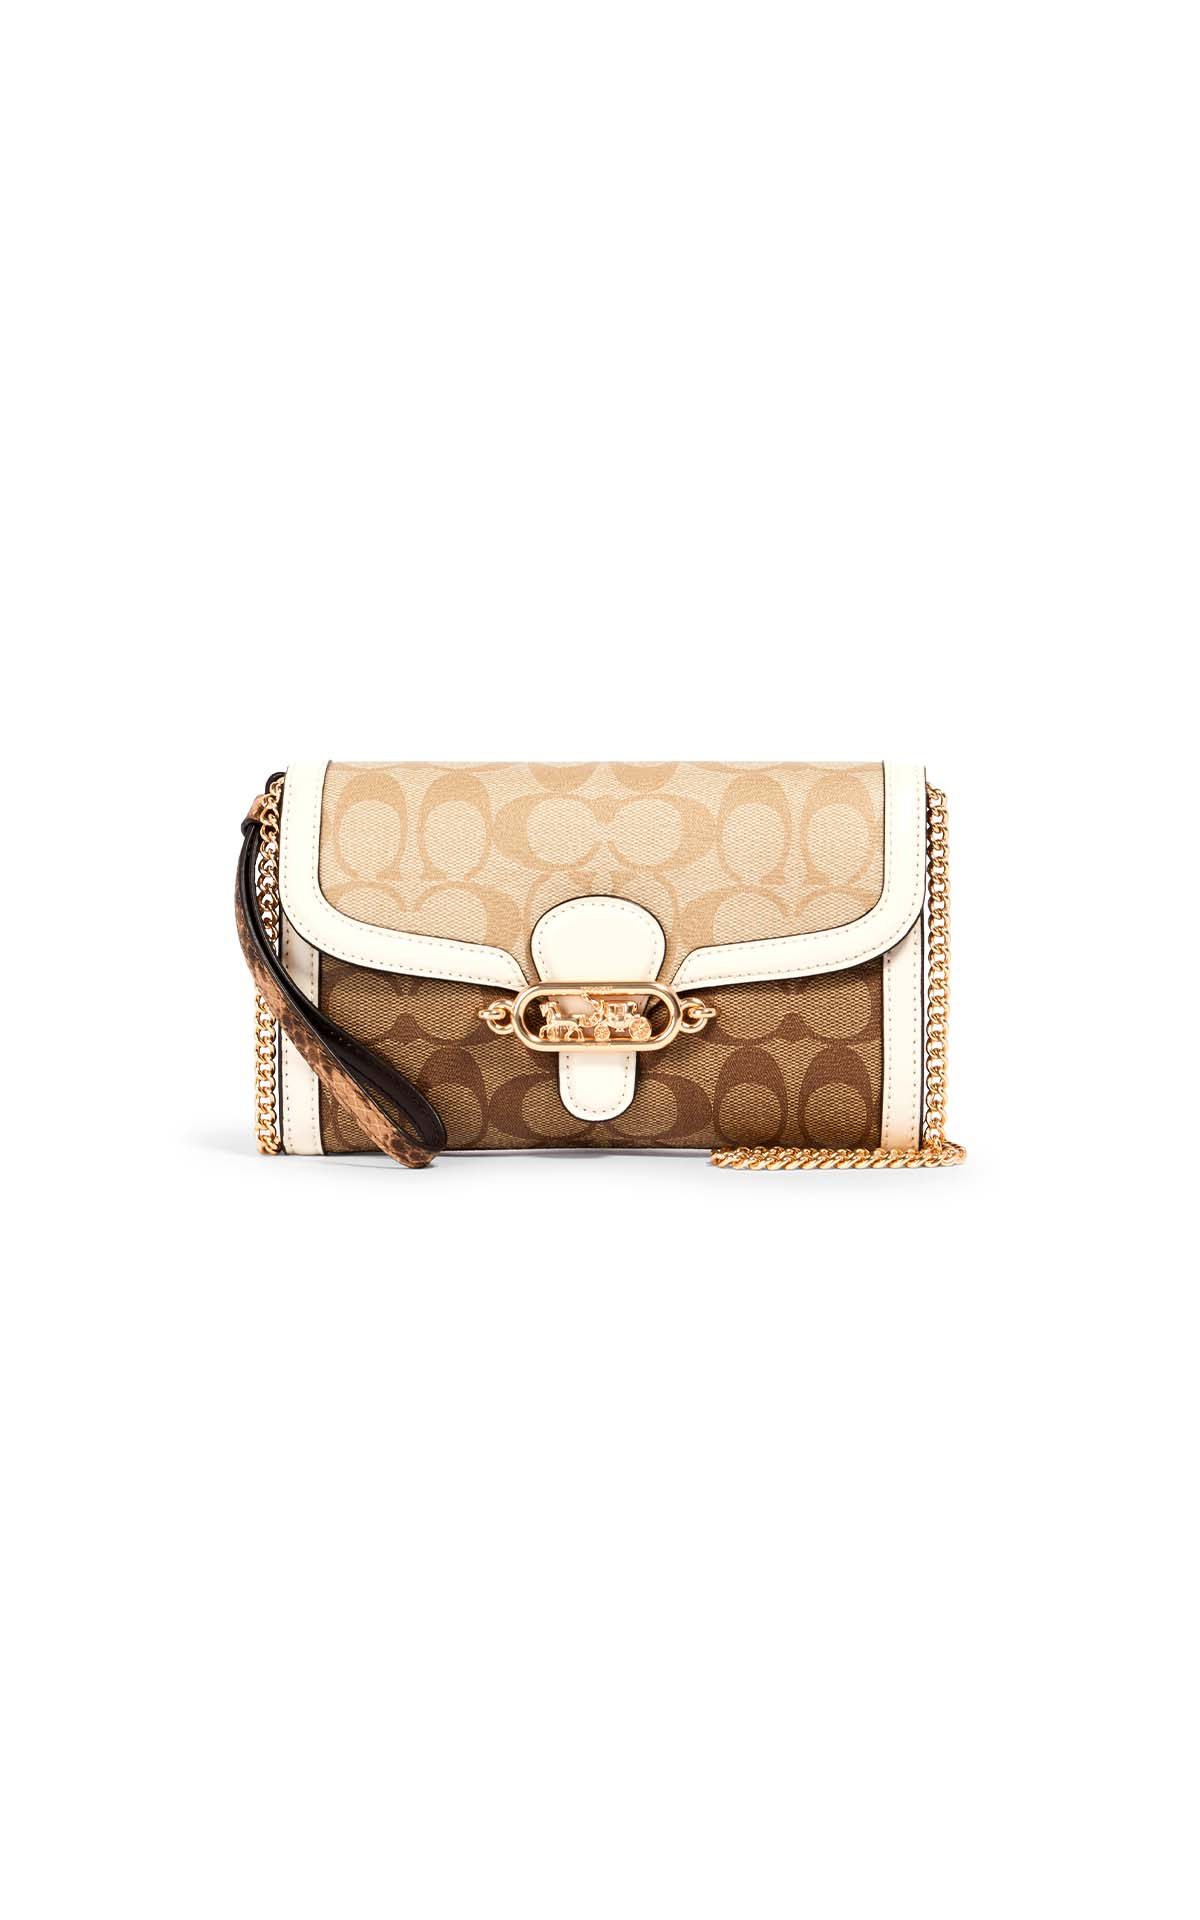 Coach Jade Bag in khaki/chalk at The Bicester Village Shopping Collection